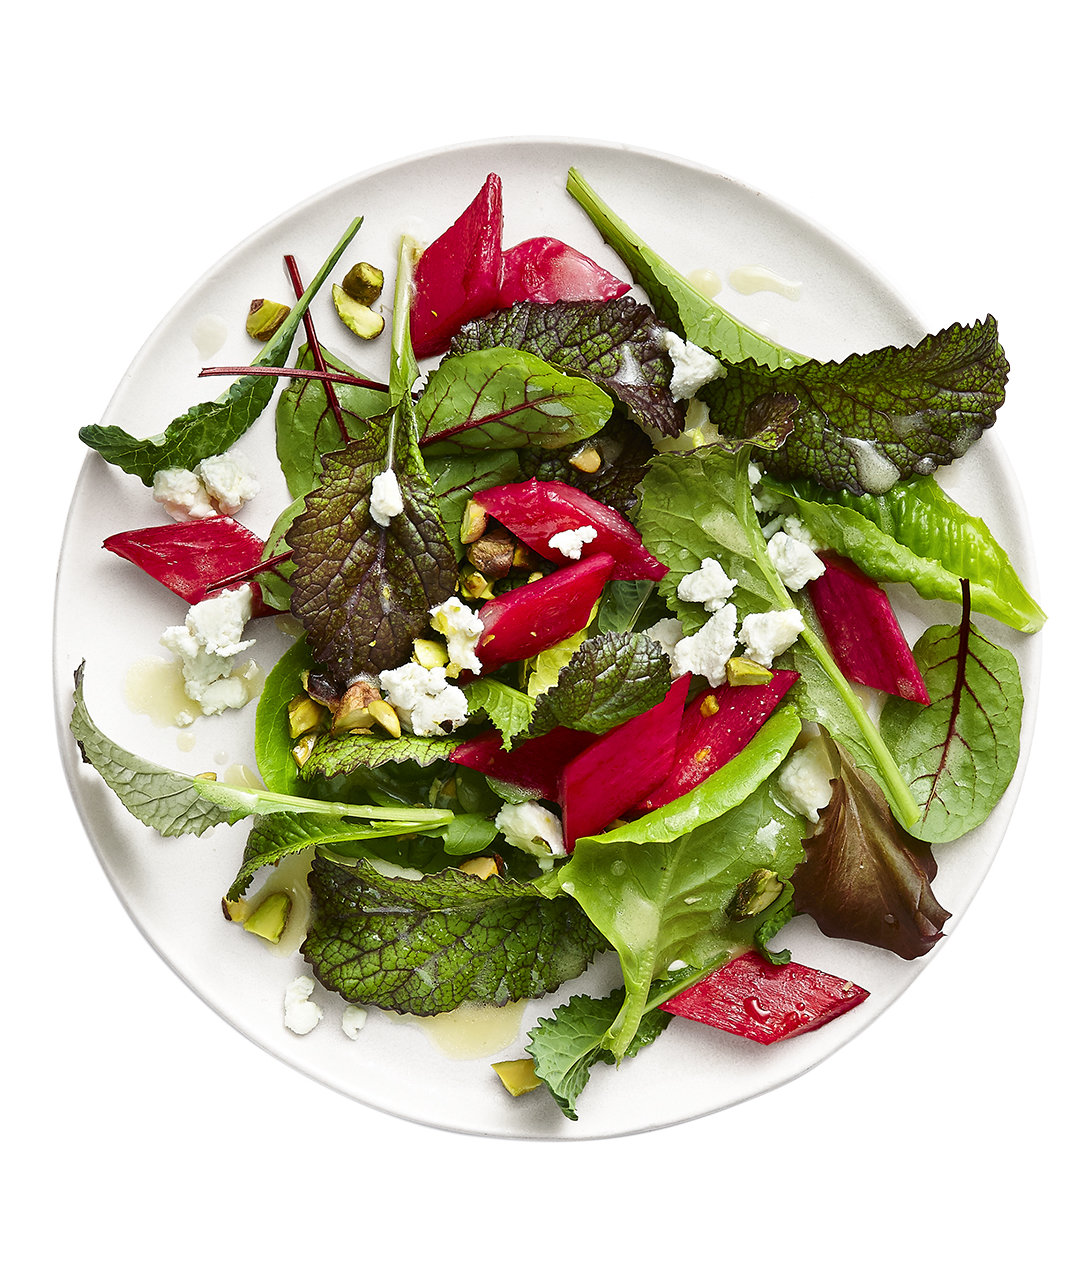 rhubarb-salad-goat-cheese-pistachios